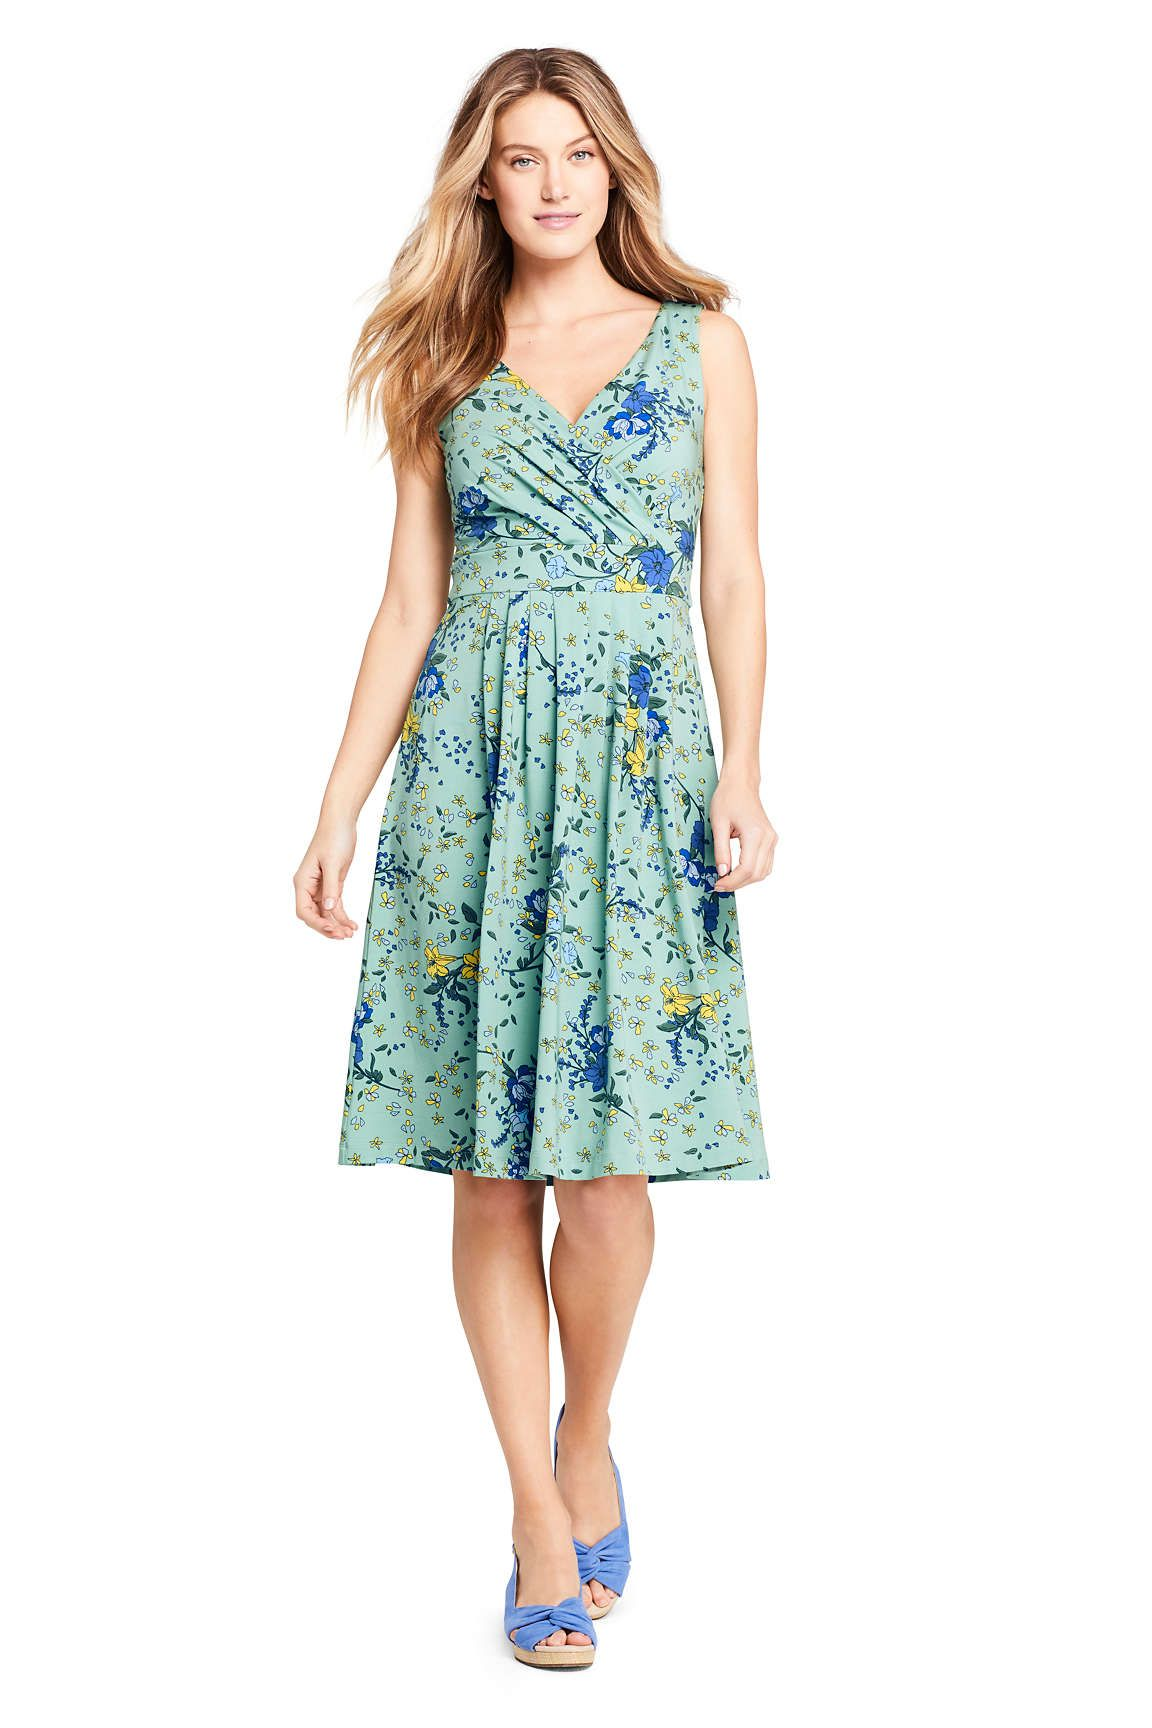 3a996422c Women's Banded Waist Fit and Flare Dress Knee Length from Lands' End ...